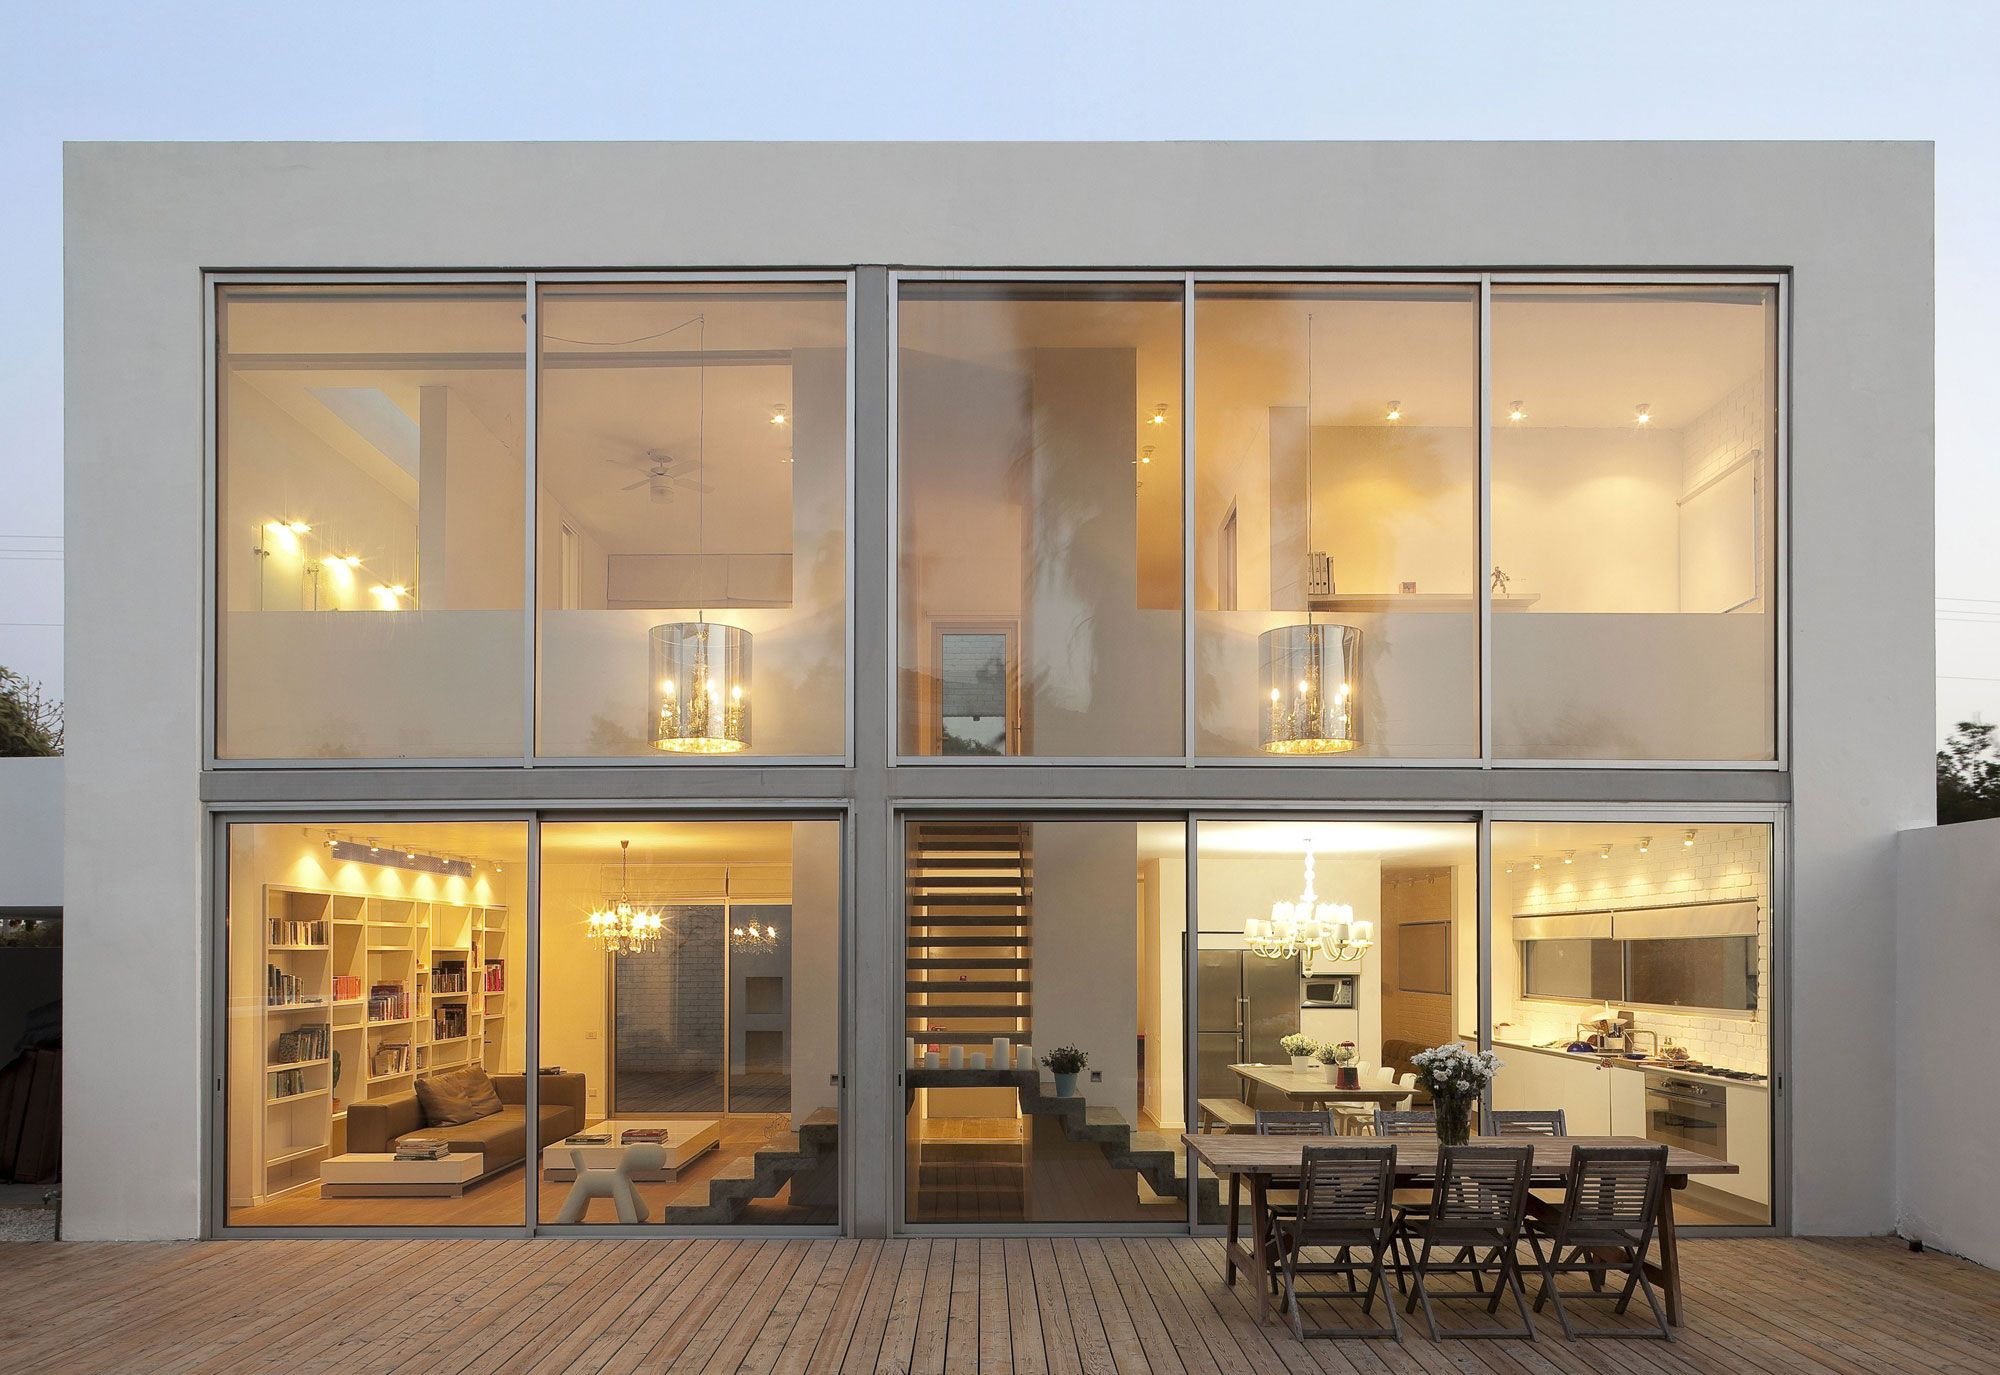 Even Yehuda House by Sharon Neuman Oded Stern Meiraz